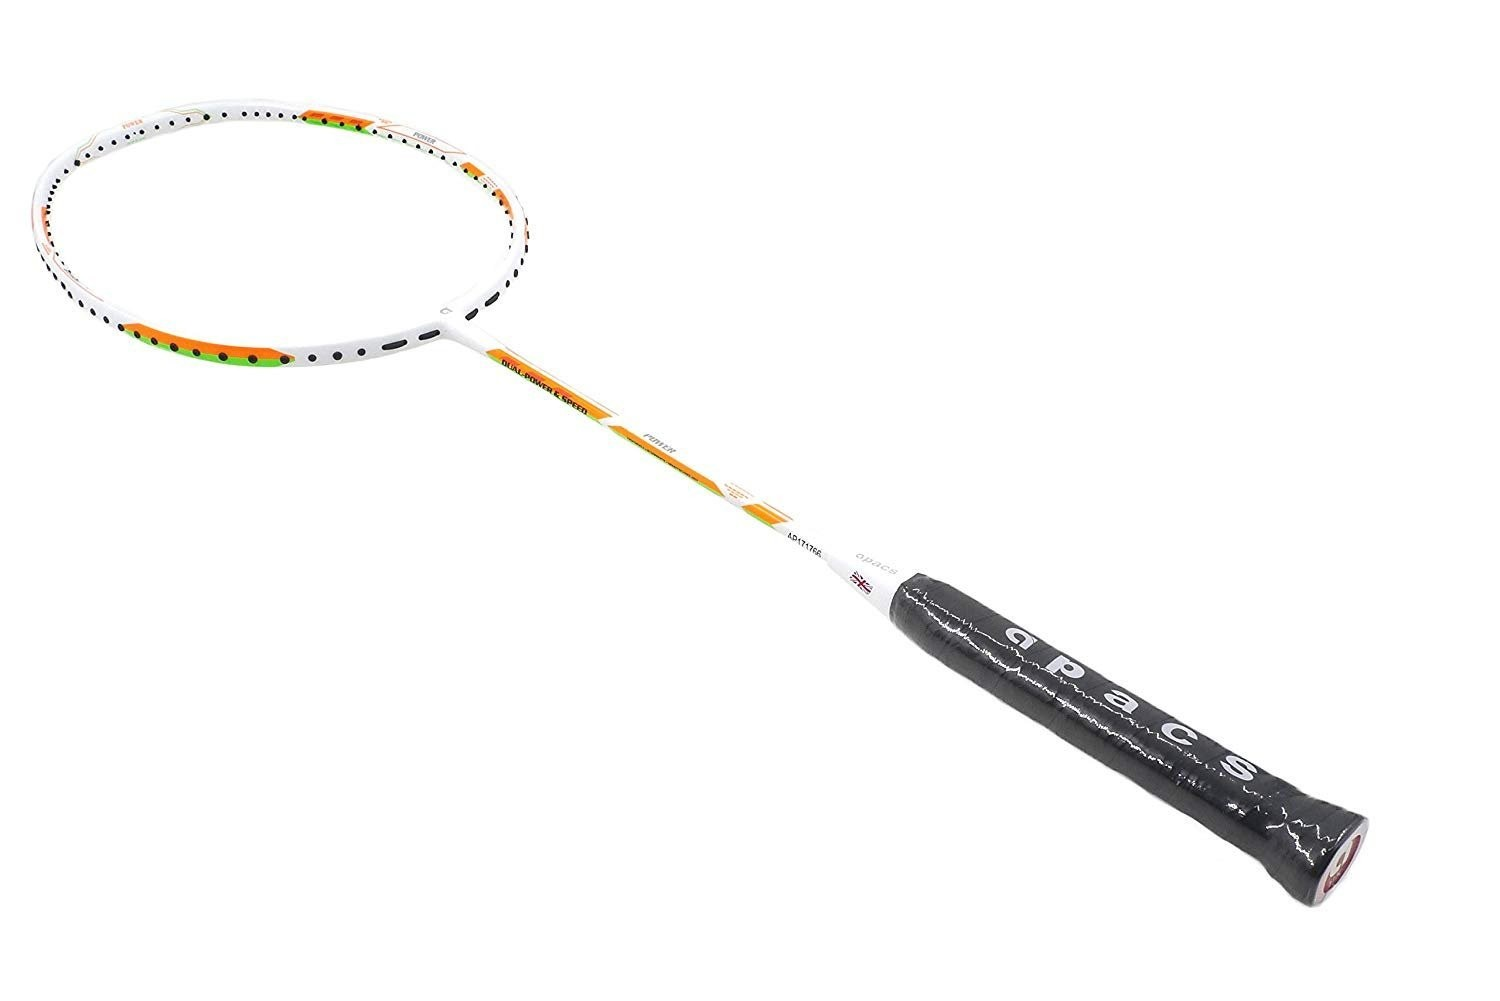 Apacs Dual Power And Speed White Badminton Racquet